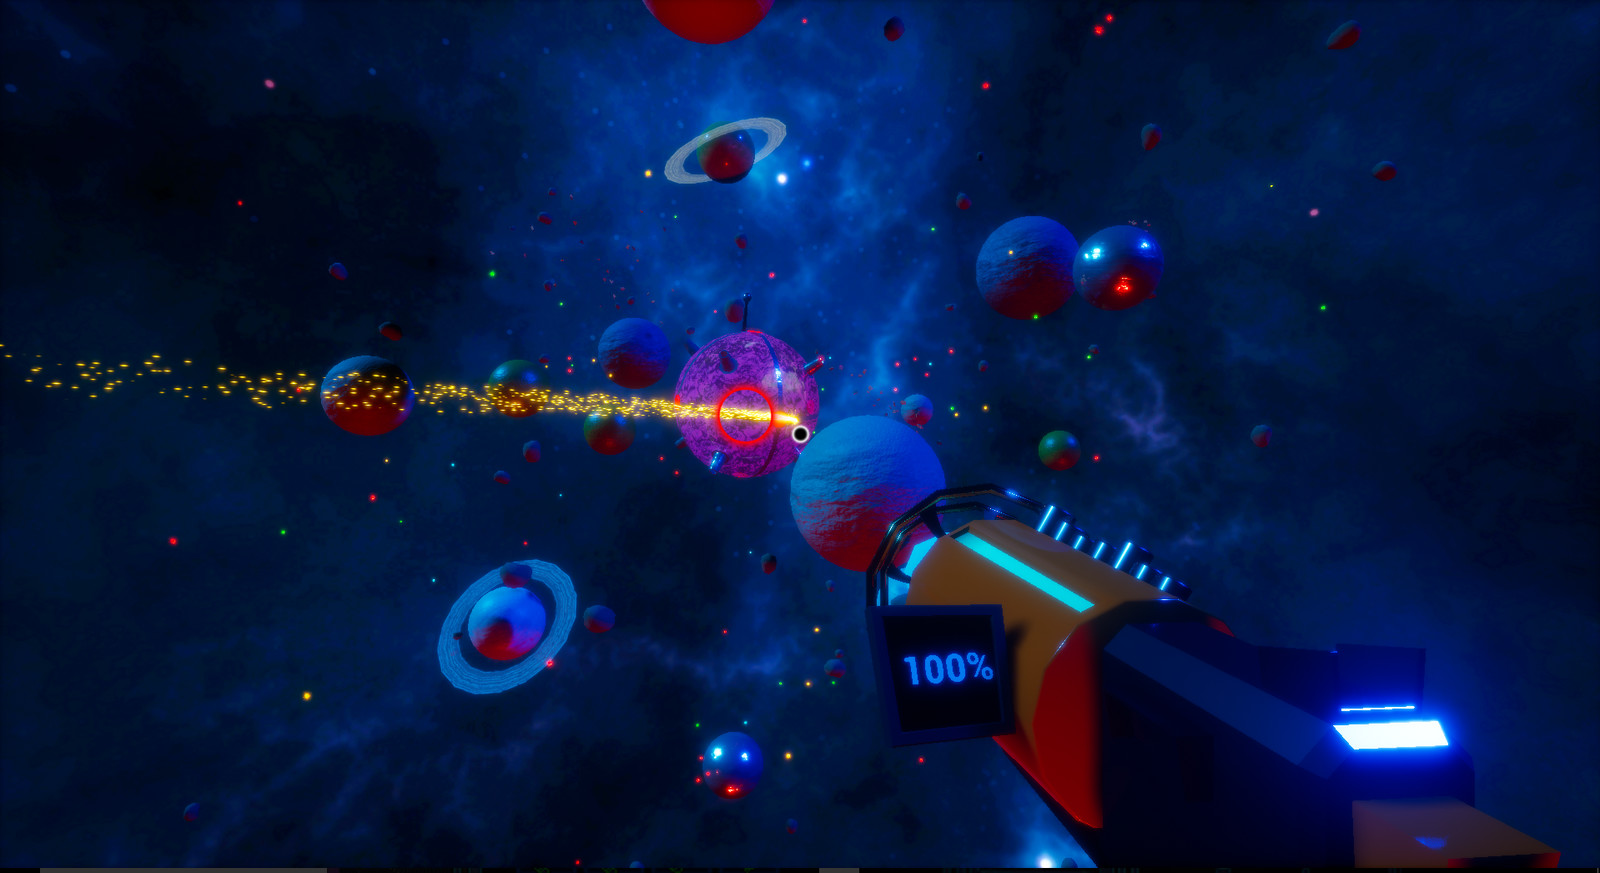 Ingame screenshot of the environment taken from the firstperson player perspective